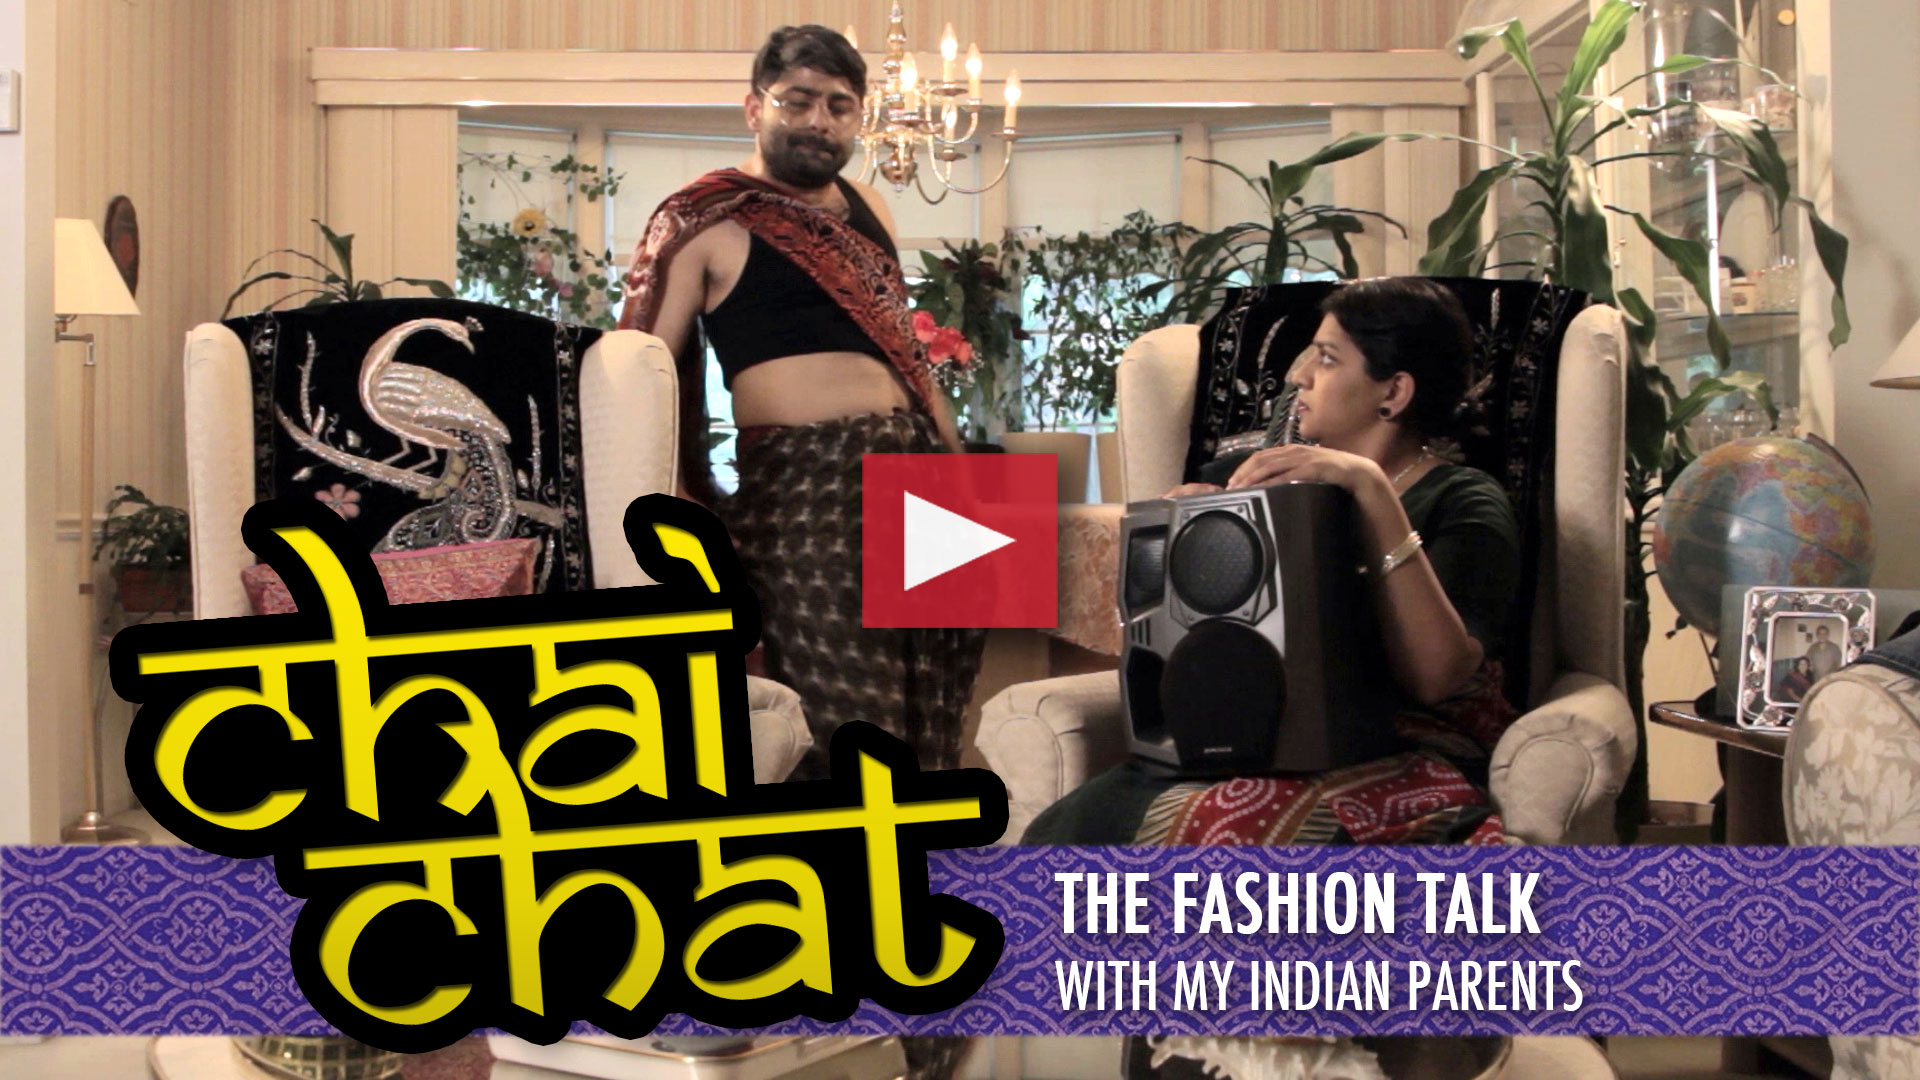 Chai Chat: The Fashion Talk with My Indian Parents